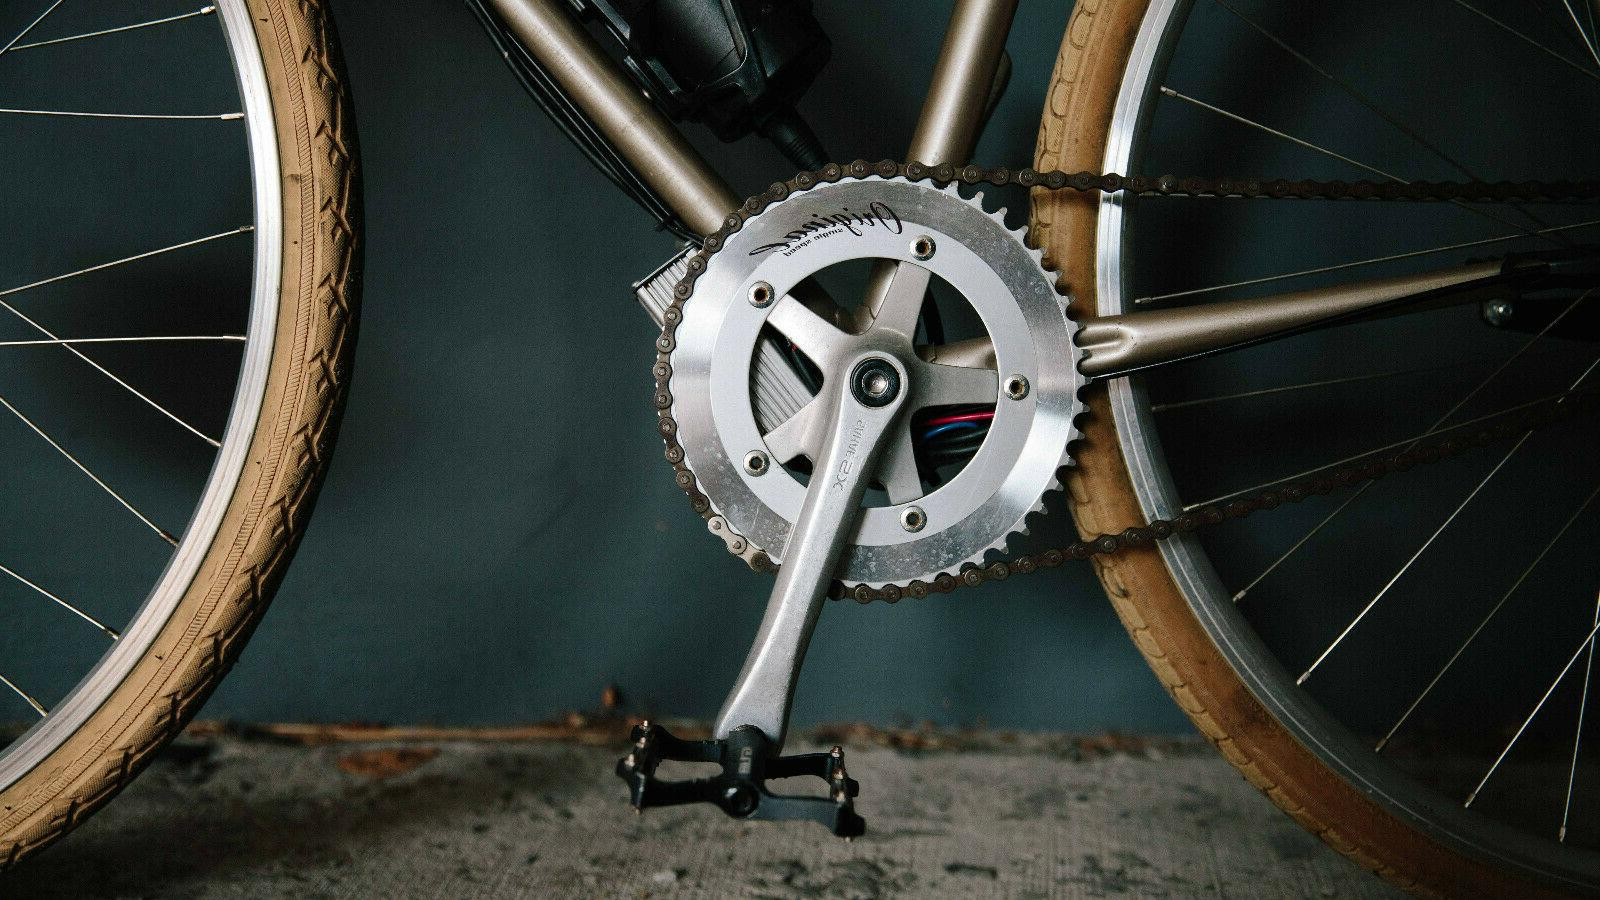 SMALL E-BIKE CONVERSION WITH VINTAGE FRAME, MOTOR,